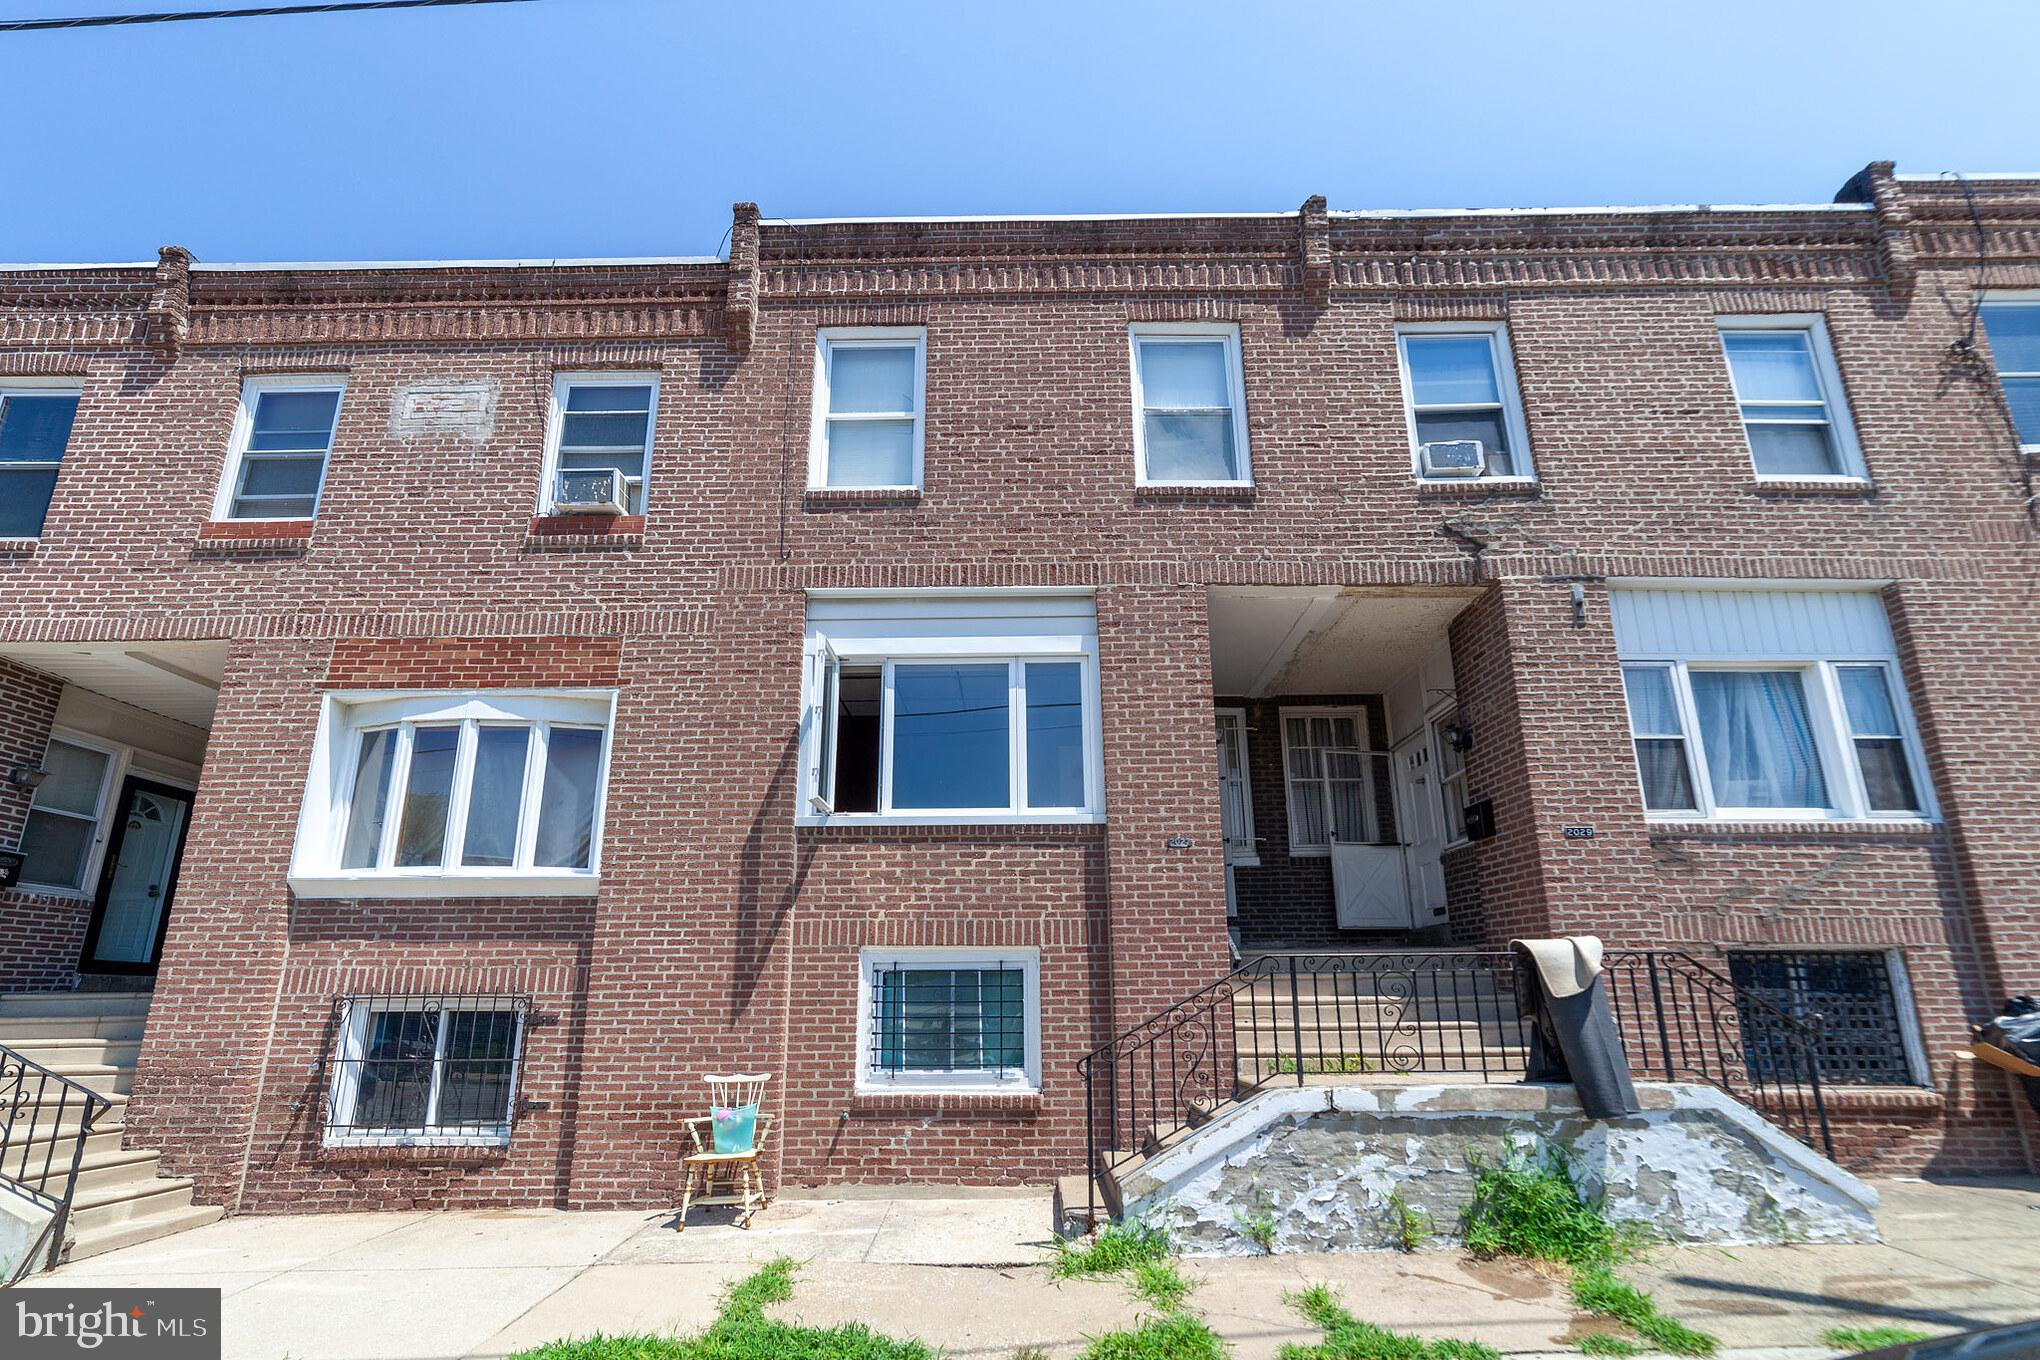 2027 S 69TH STREET, PHILADELPHIA, PA 19142